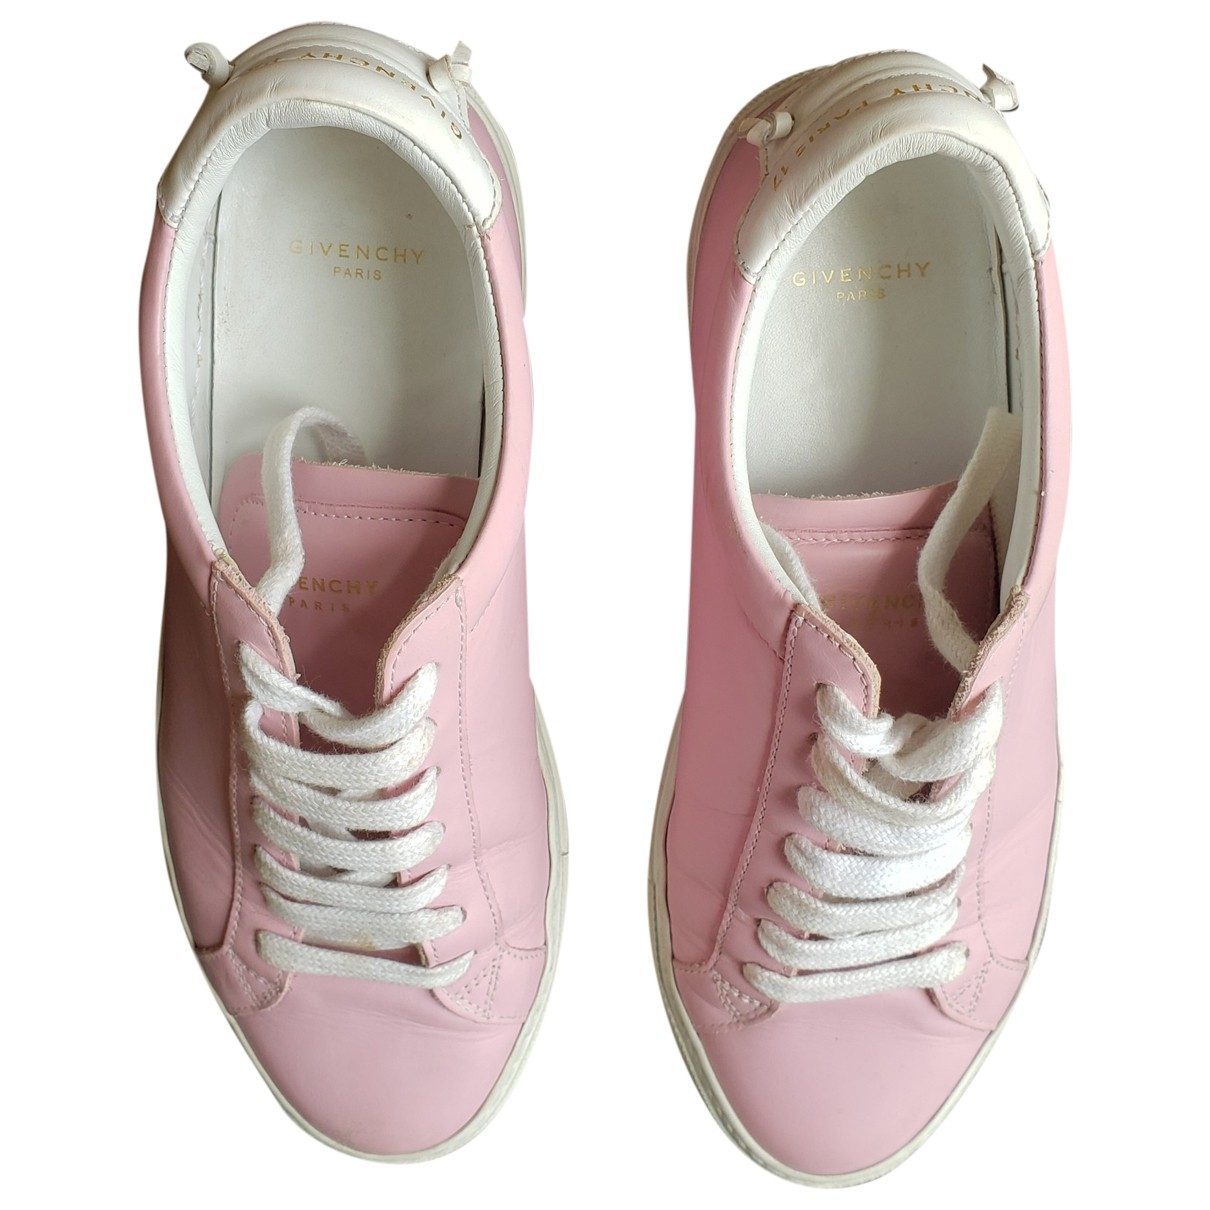 Givenchy \N Sneakers in  Rosa Leder